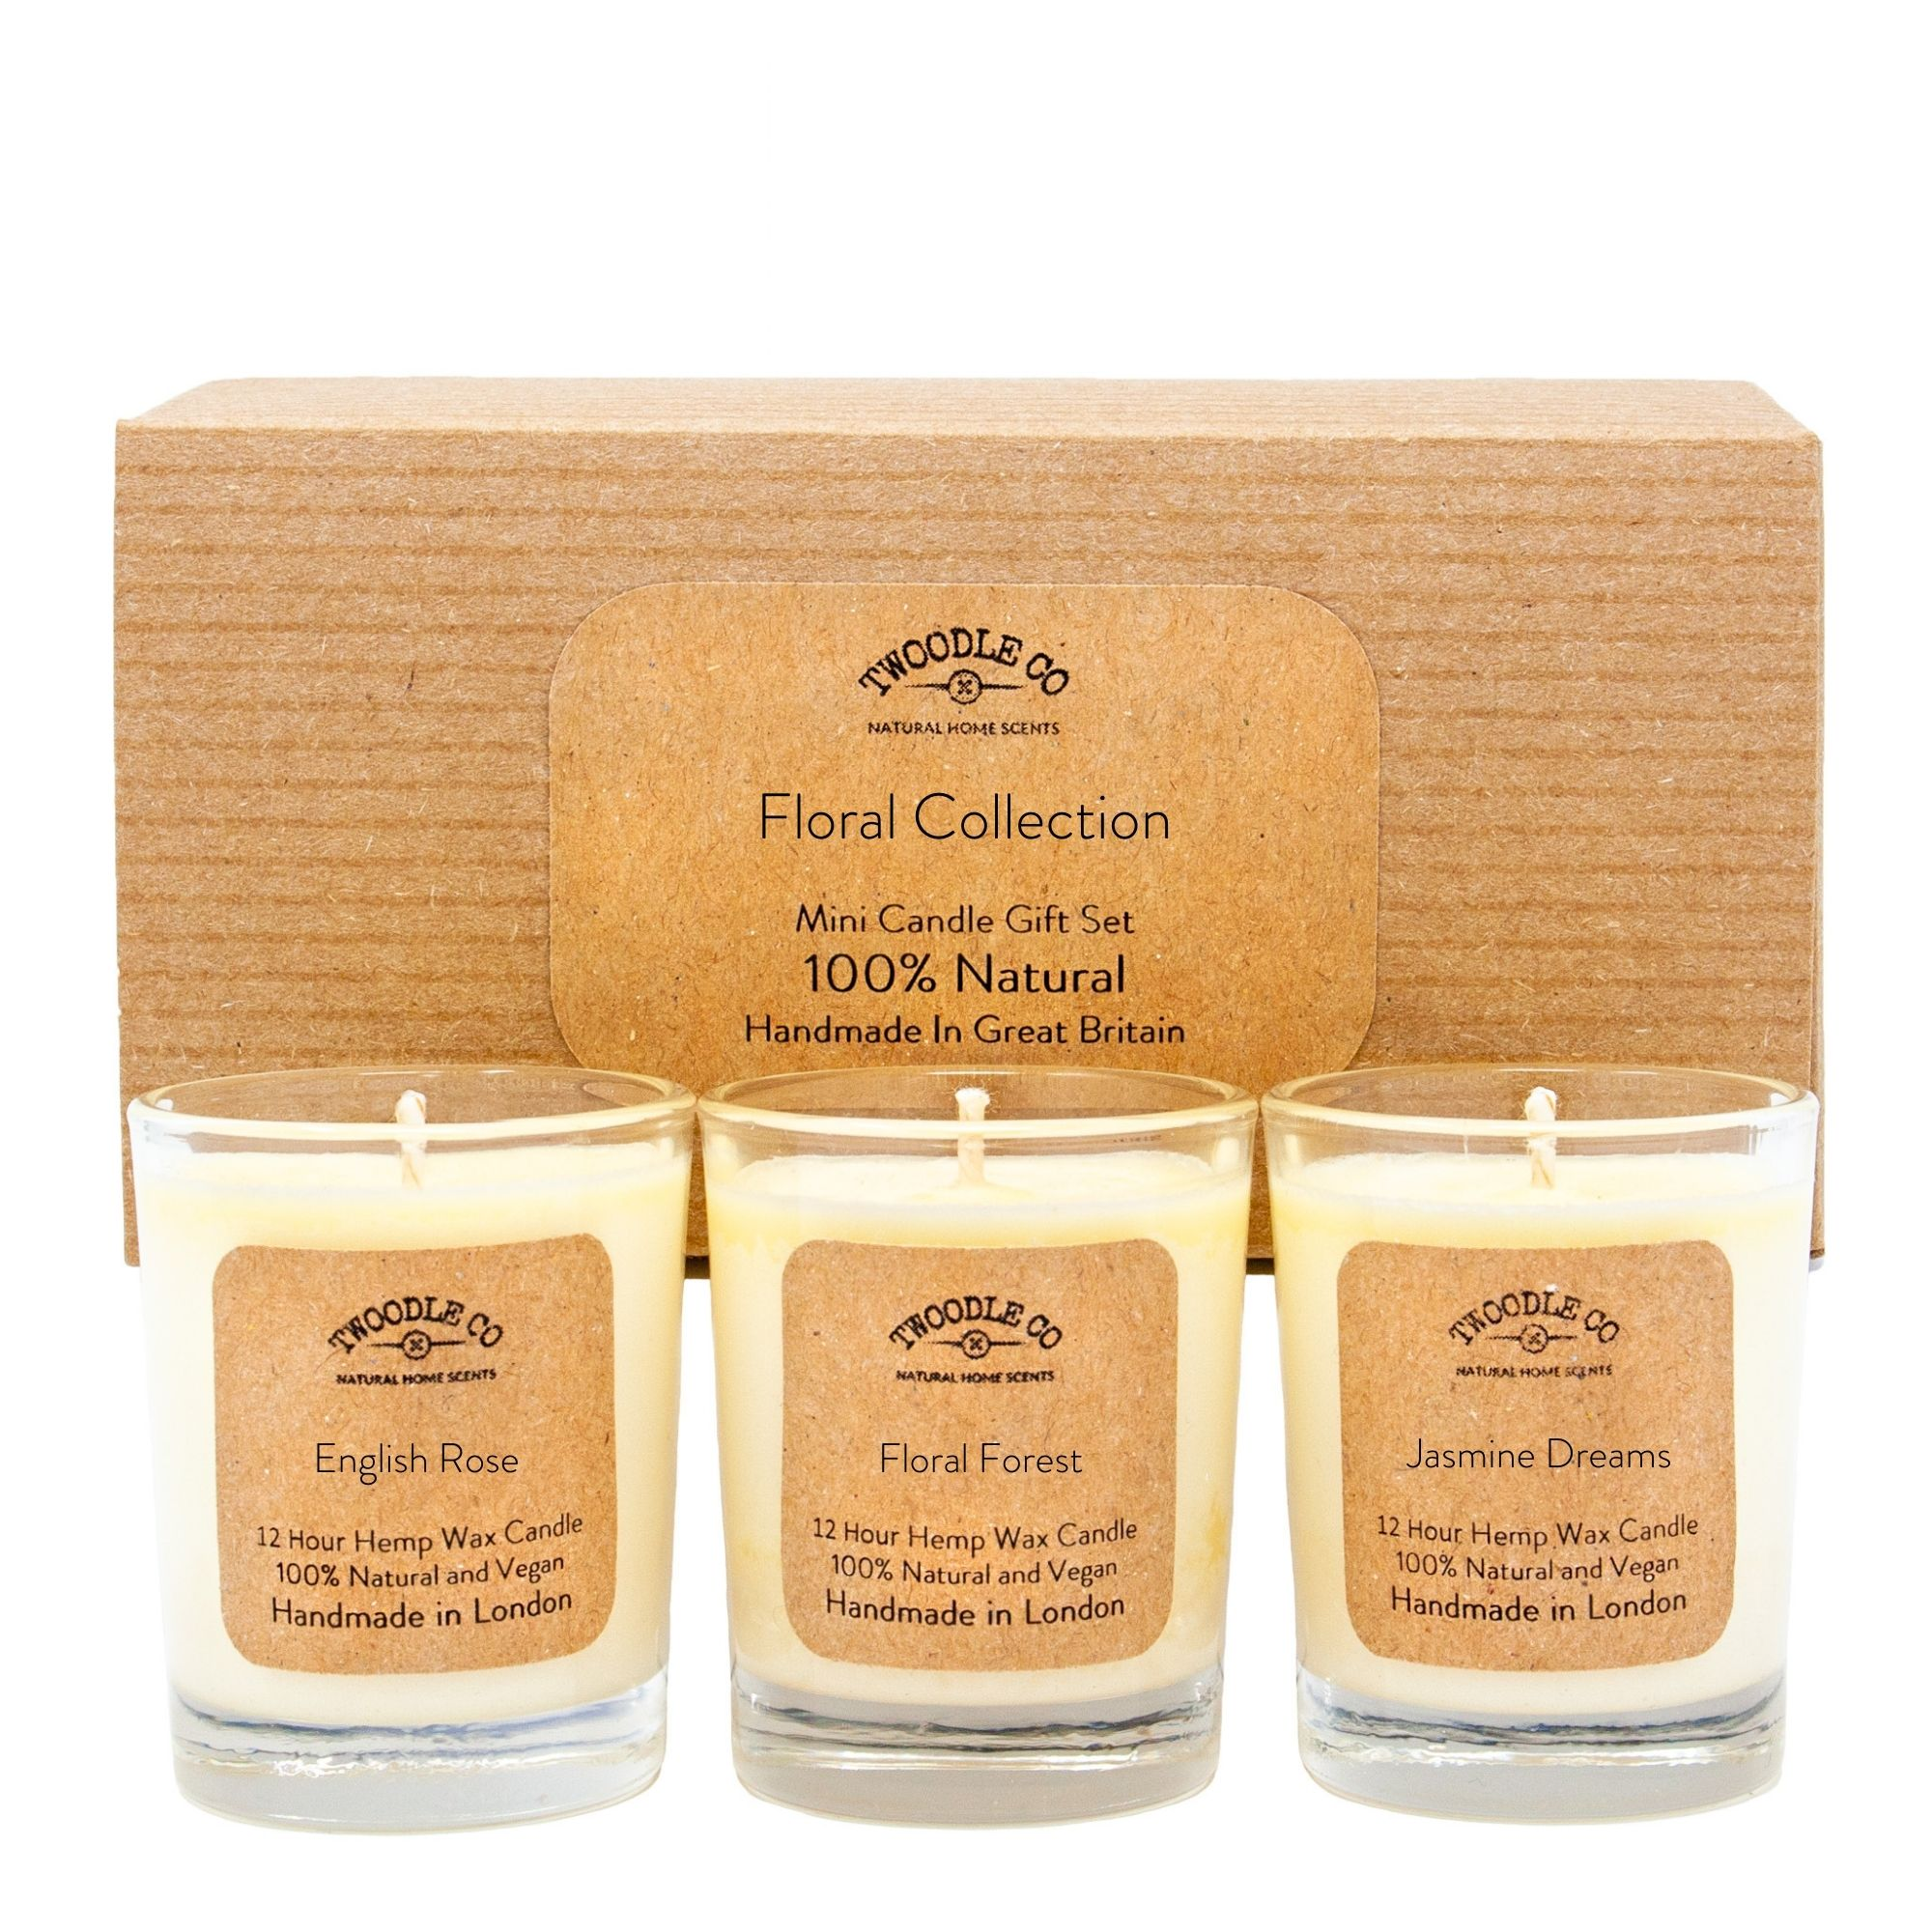 Floral Collection Mini triple candle Gift Set by twoodle co natural home scents1